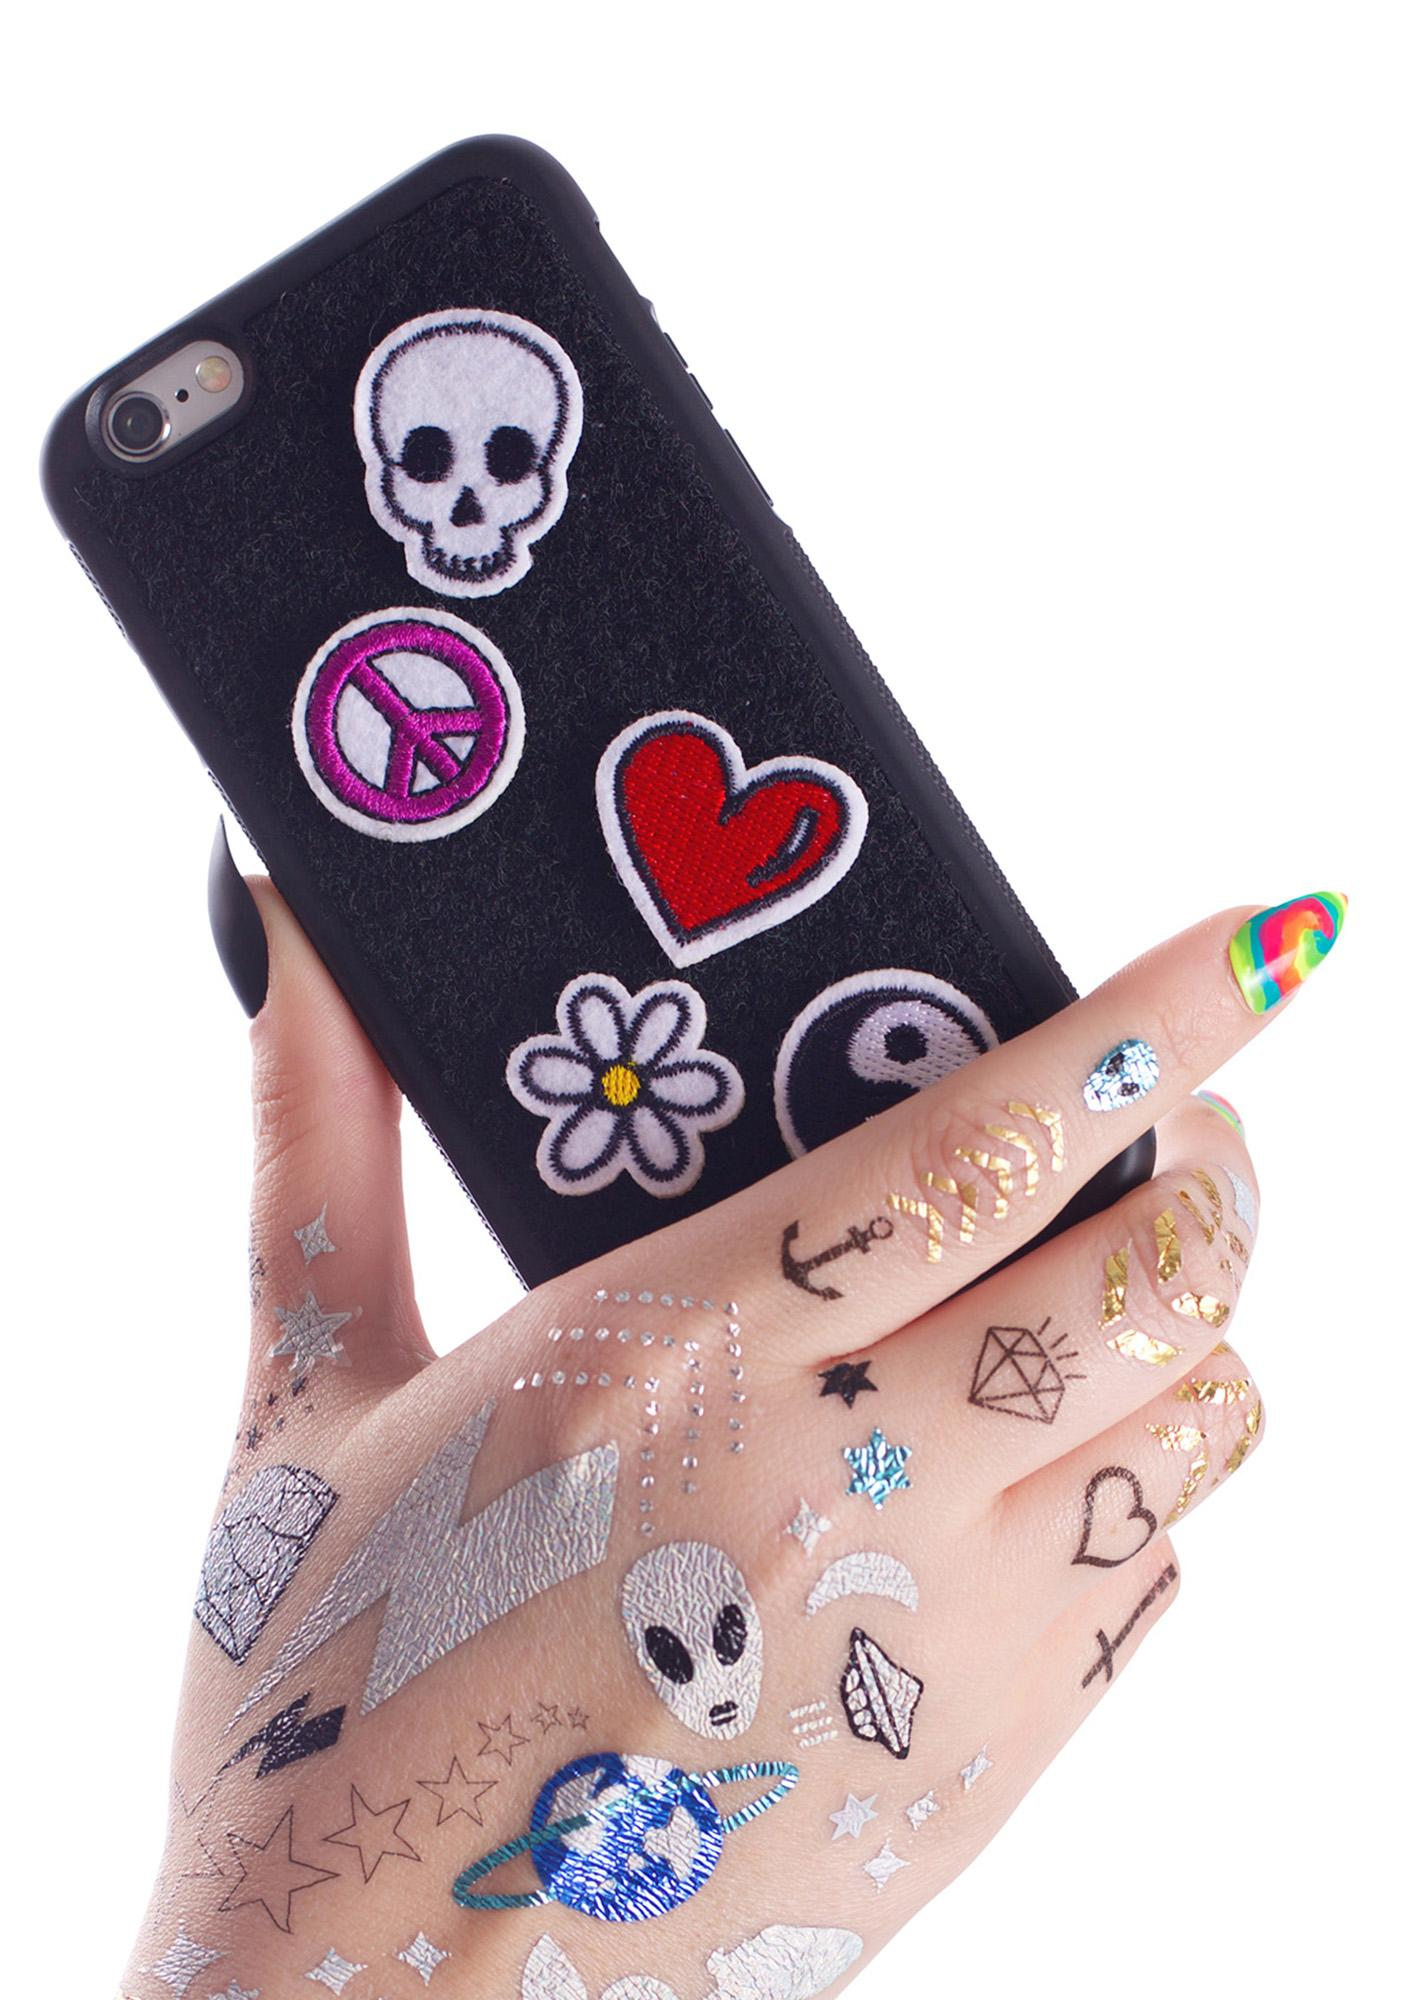 Case Taboo Cult Following iPhone 6/6+ Case